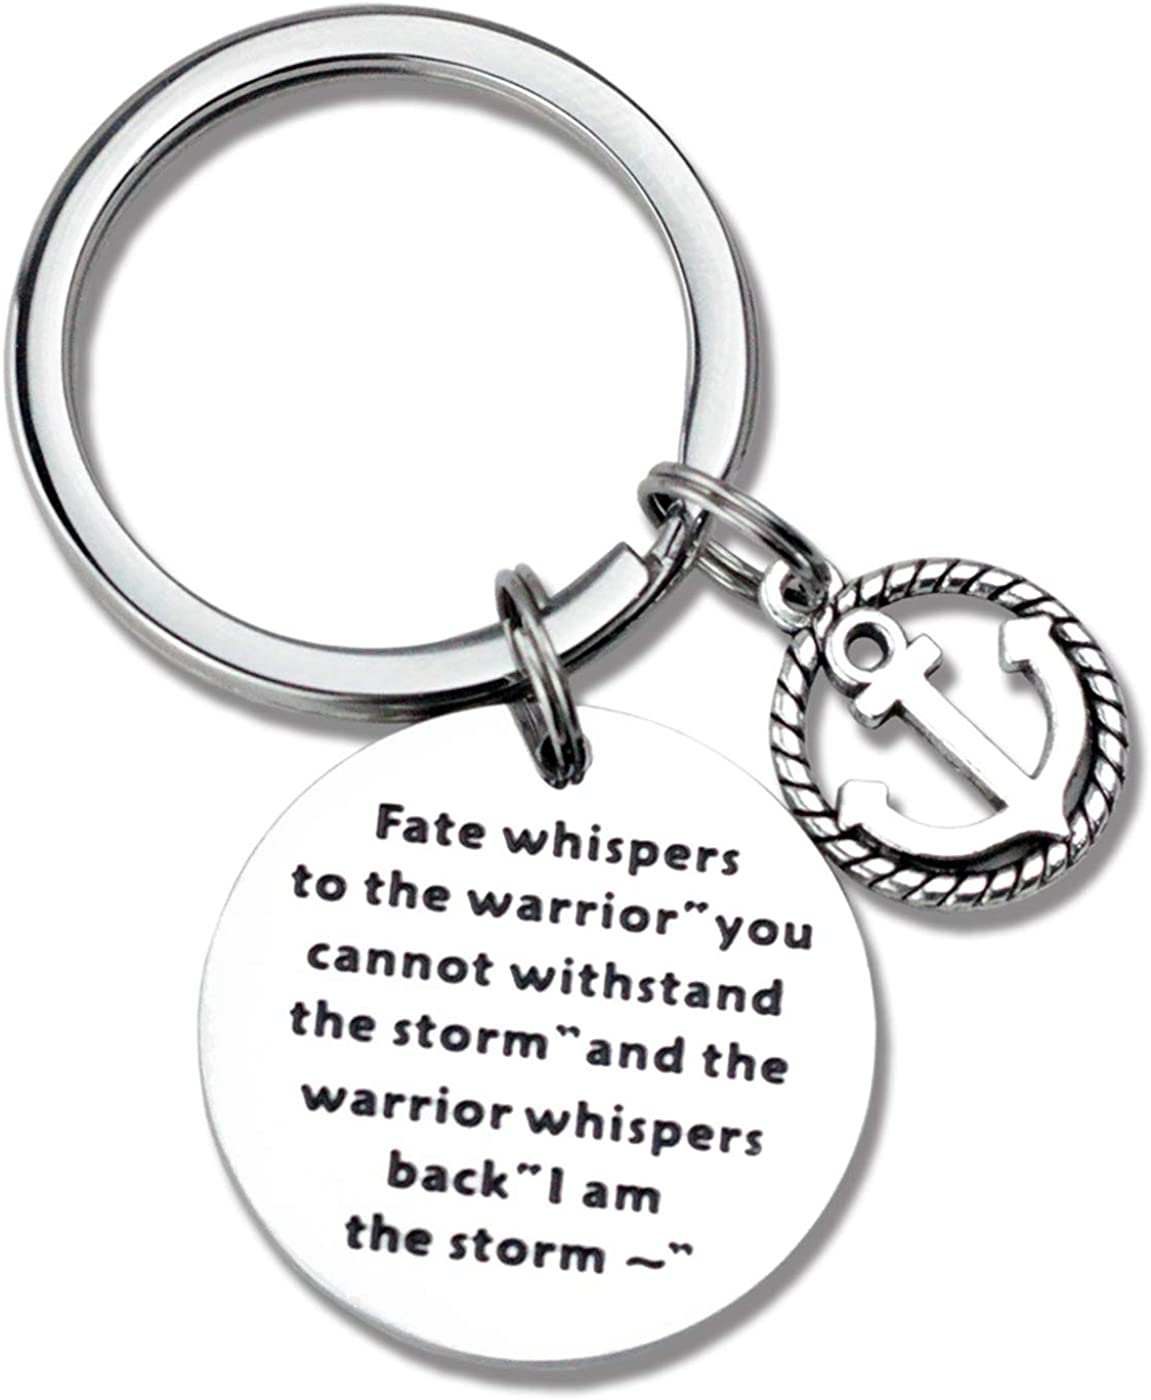 Graduation Gift Keychain Inspirational Keyring for Newly Graduates Women Men Her Feminist Fighter Survivor Gift Fate Whispers to The Warrior